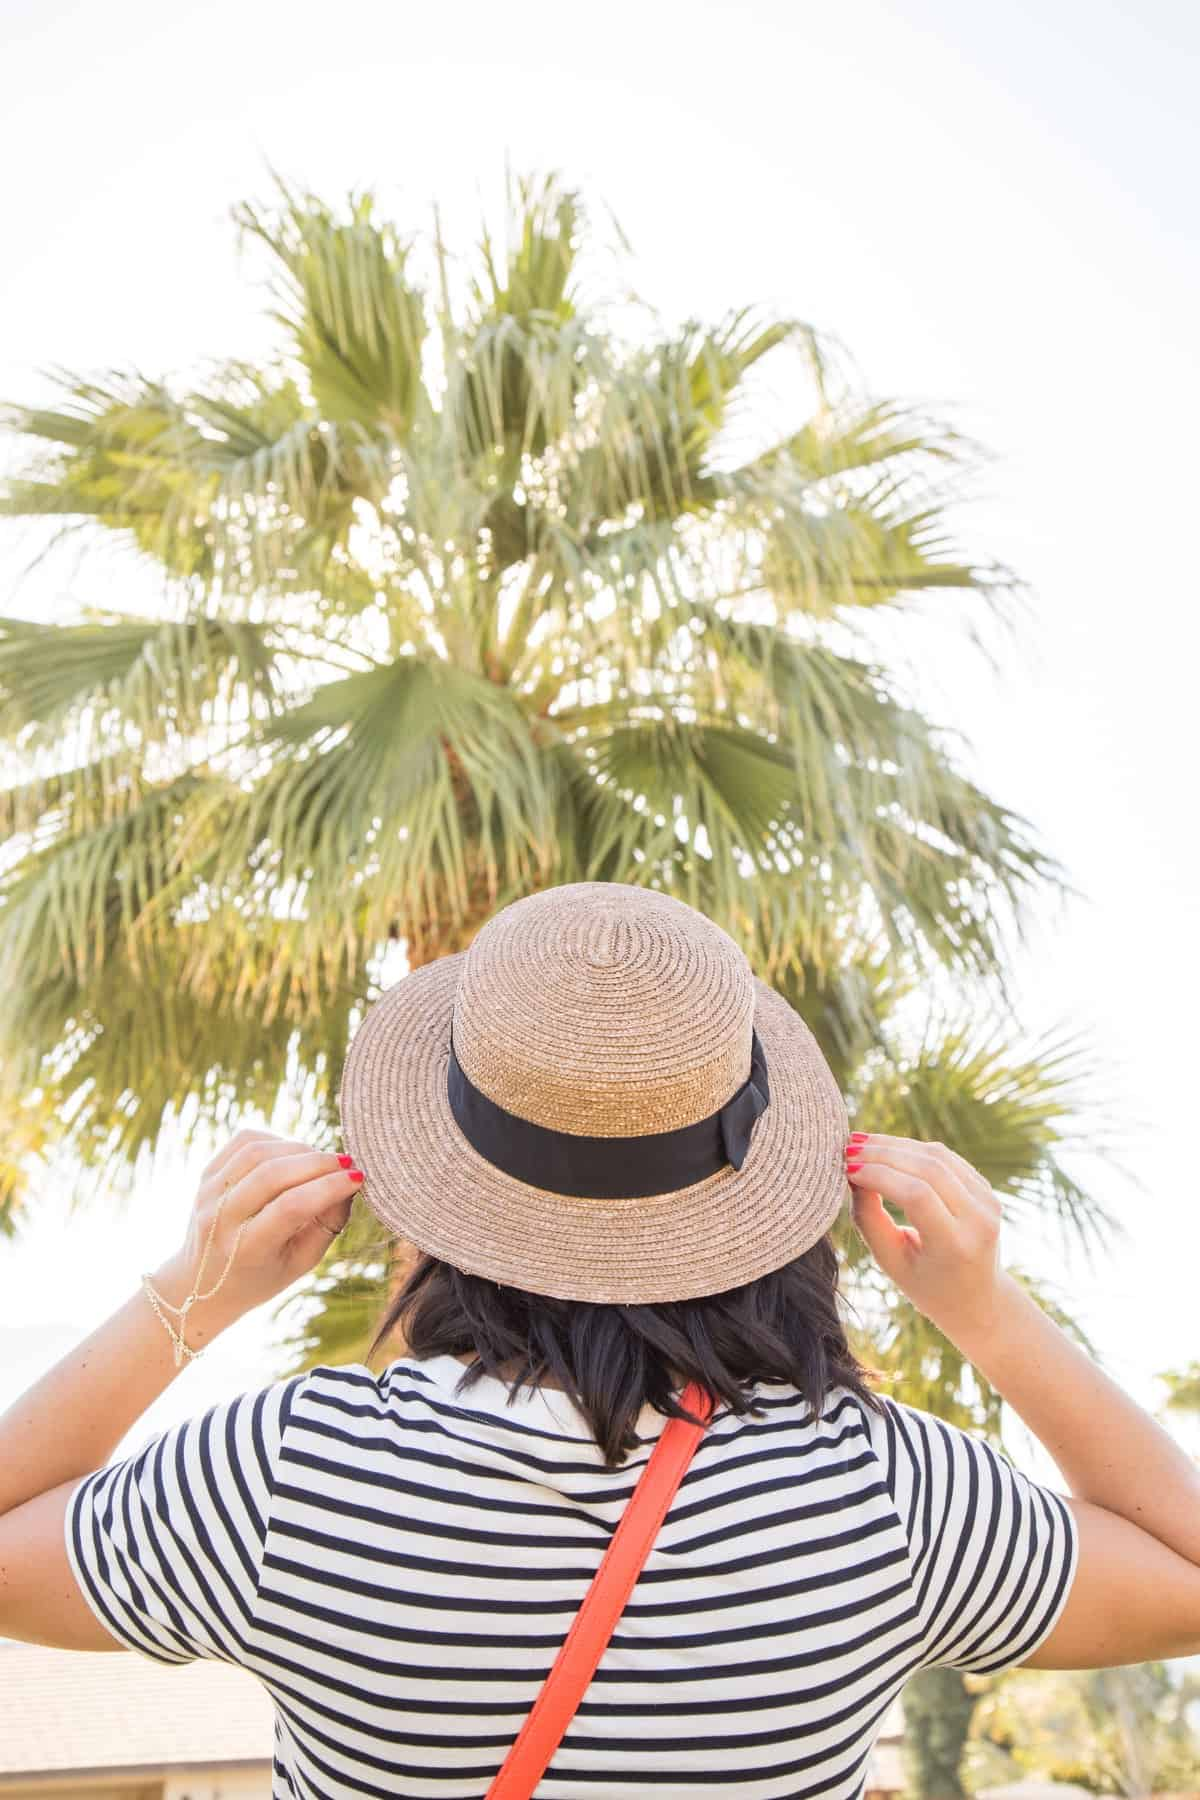 Boat hat, Boater hat, Coachella outfit ideas, summer outfit ideas - My Style Vita - @mystylevita